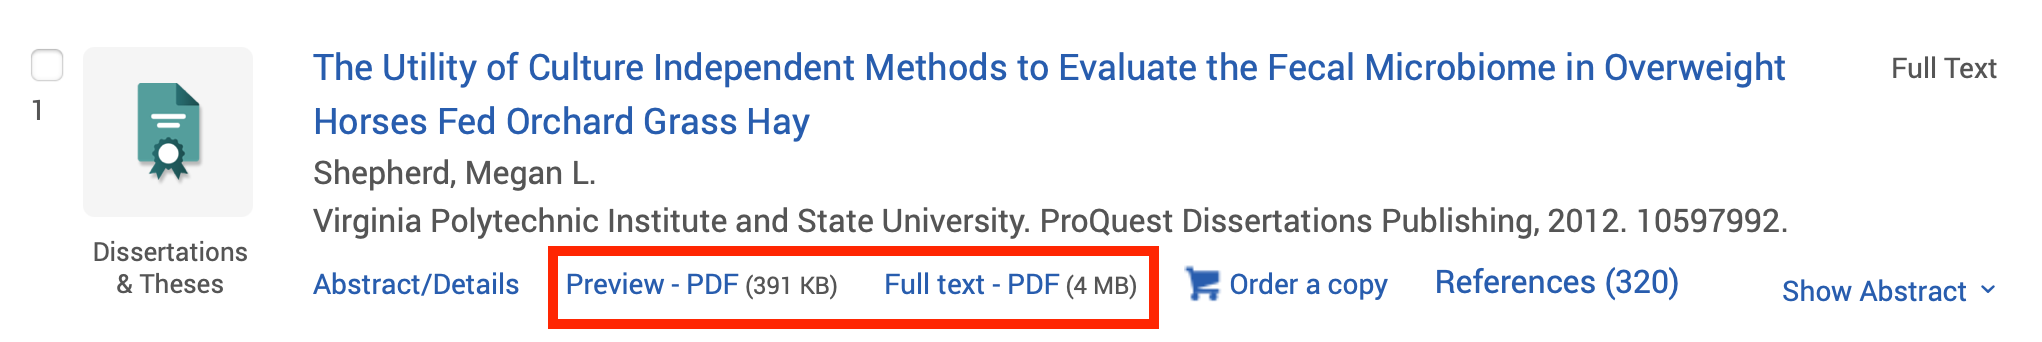 Image showing ProQuest Dissertations & Theses search results page with find full text option highlighted.